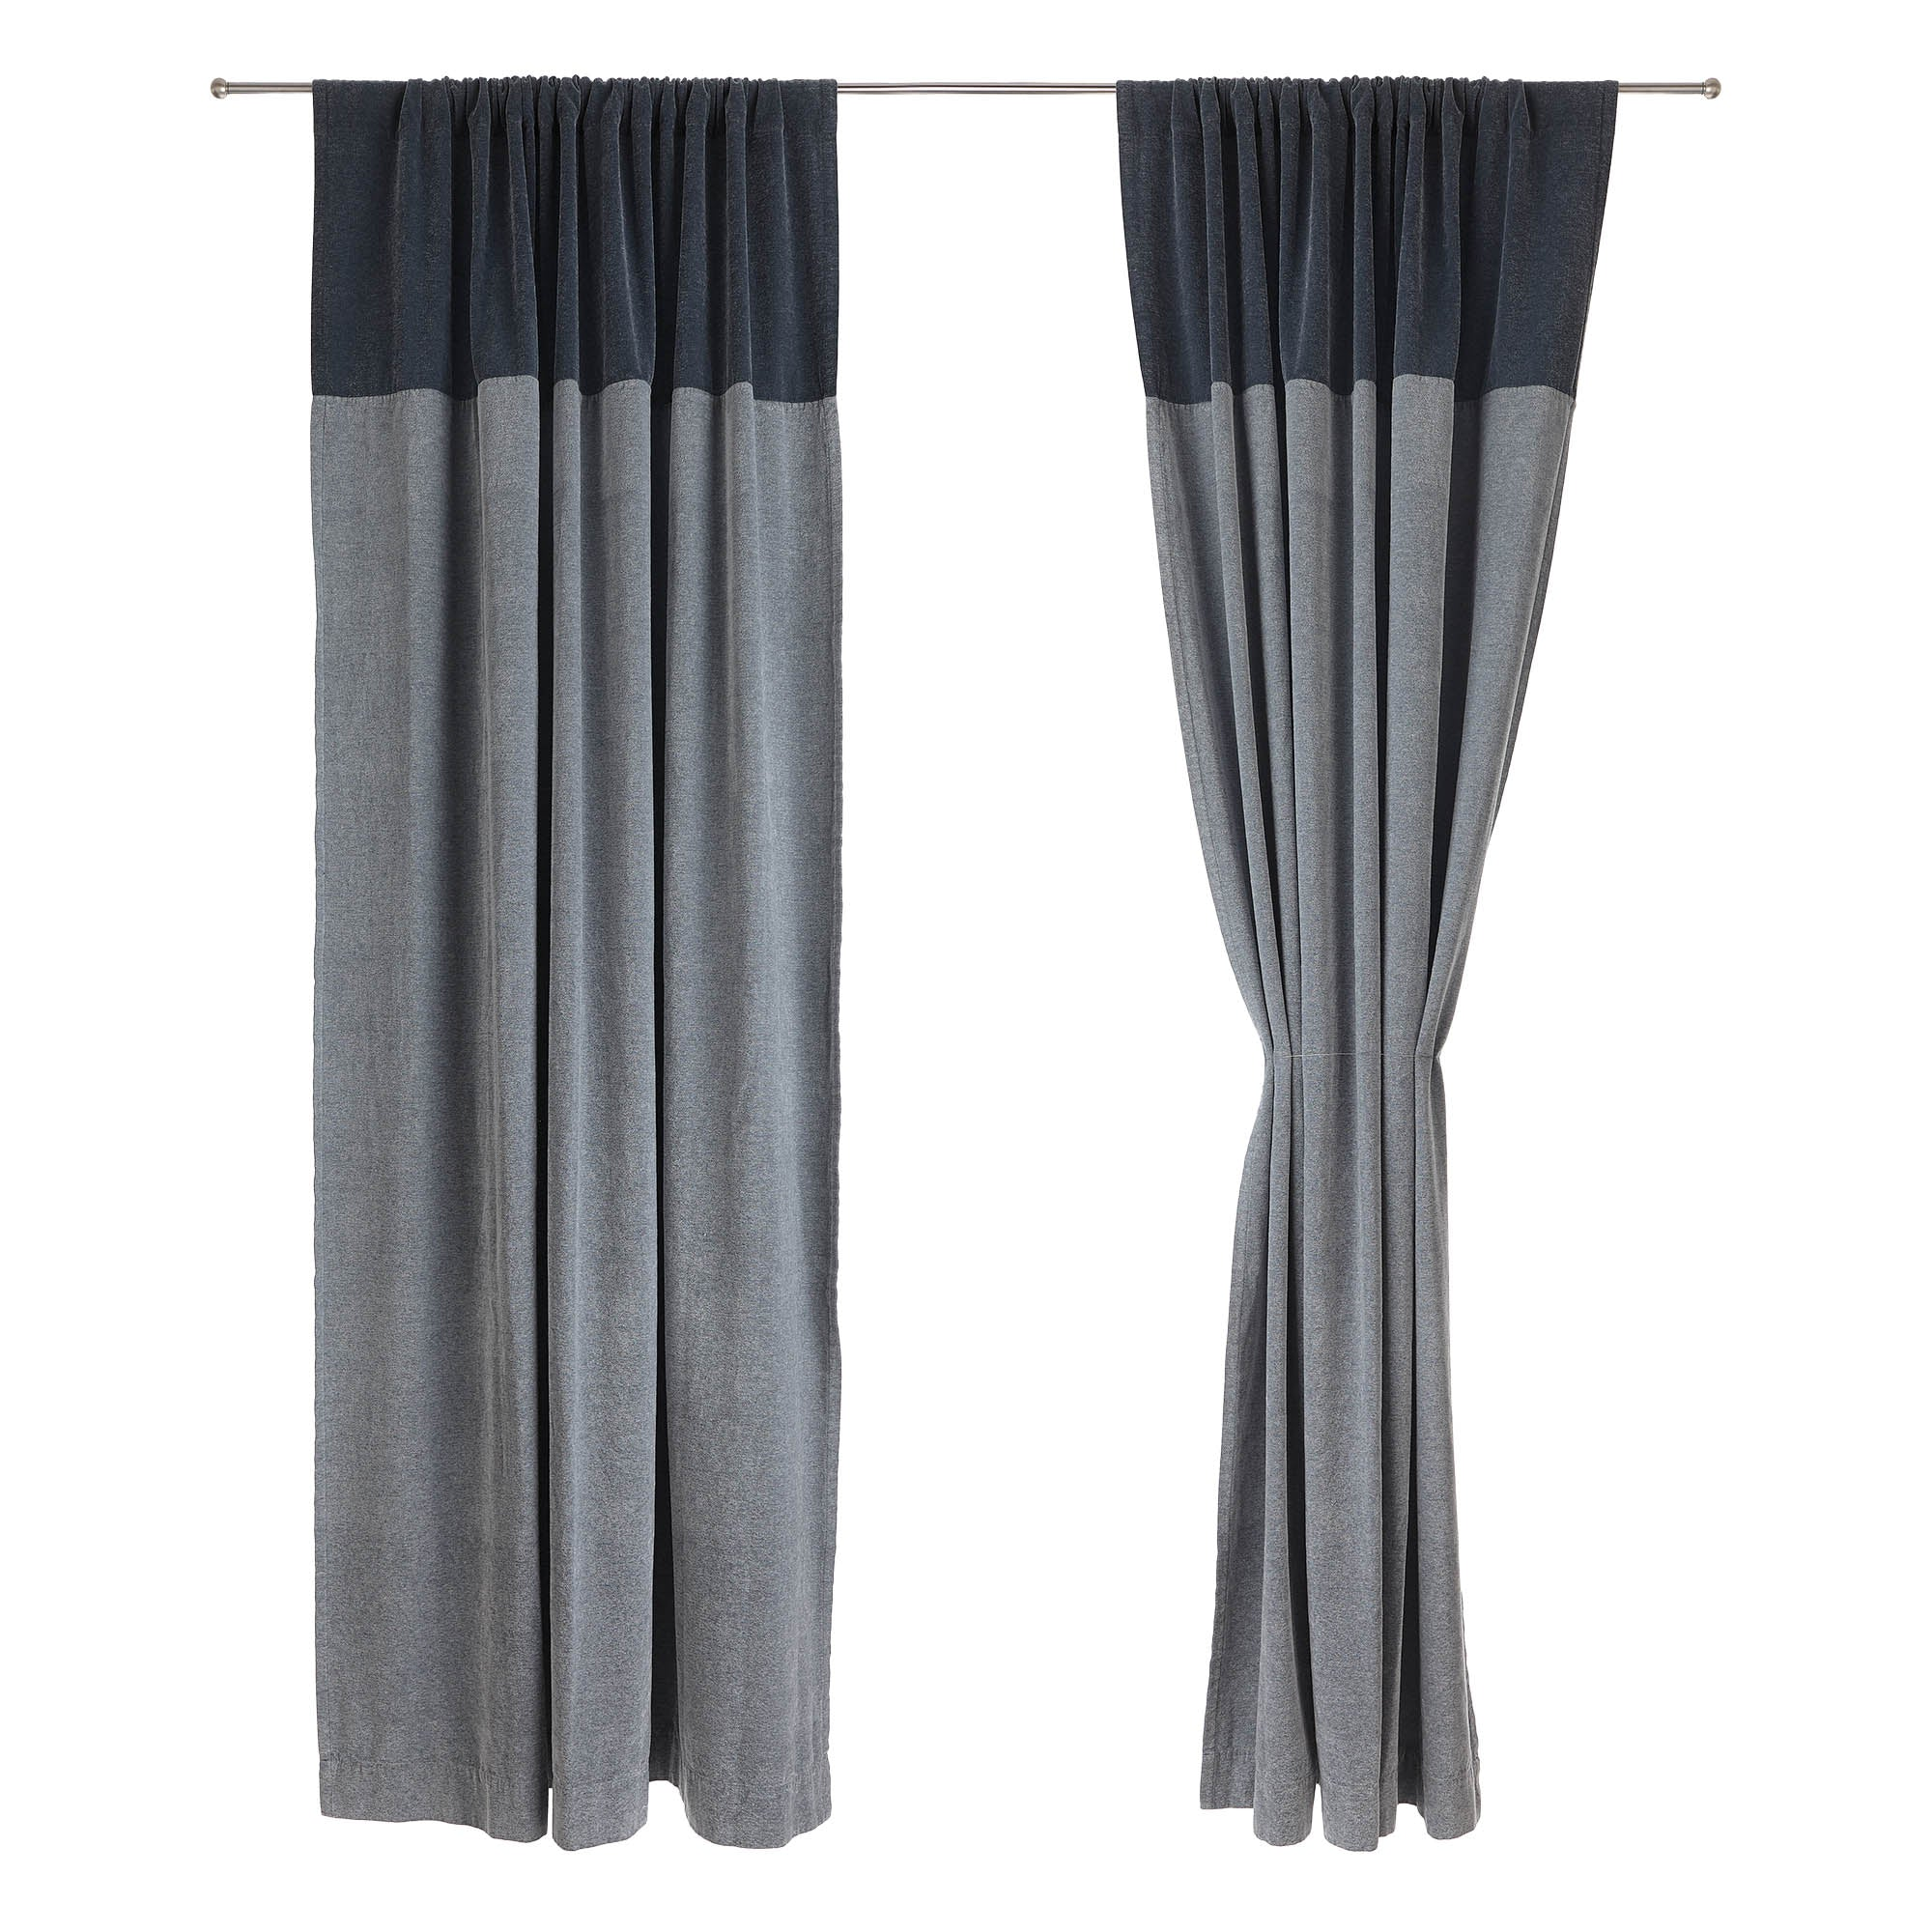 Calcada curtain in teal & white | Home & Living inspiration | URBANARA